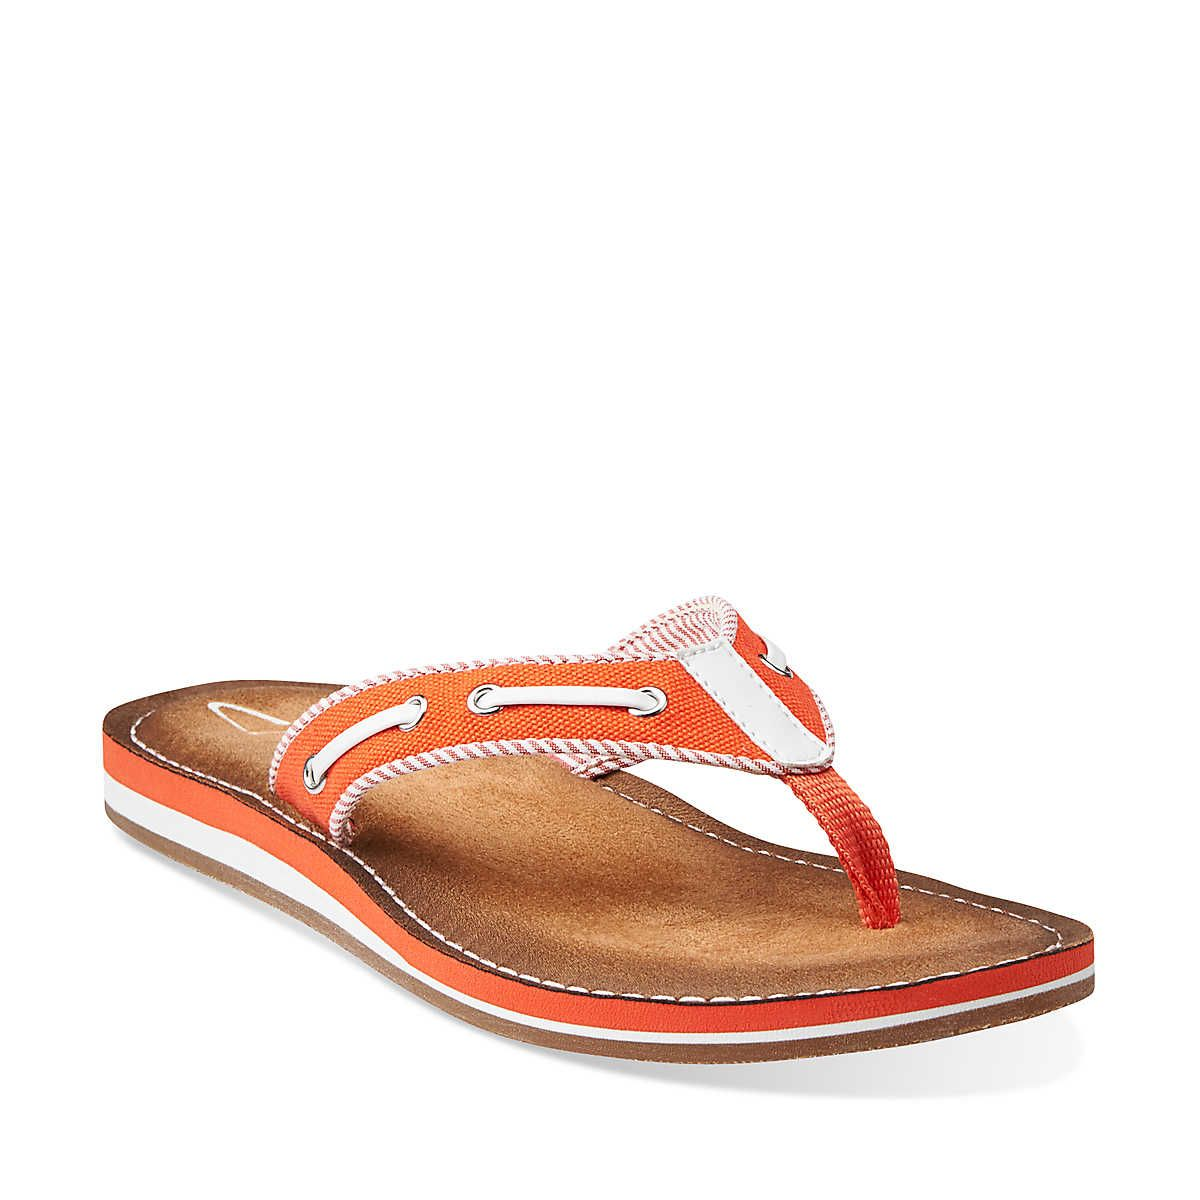 2f01660a75 Flo Cherrymore in Coral Synthetic - Womens Sandals from Clarks ...